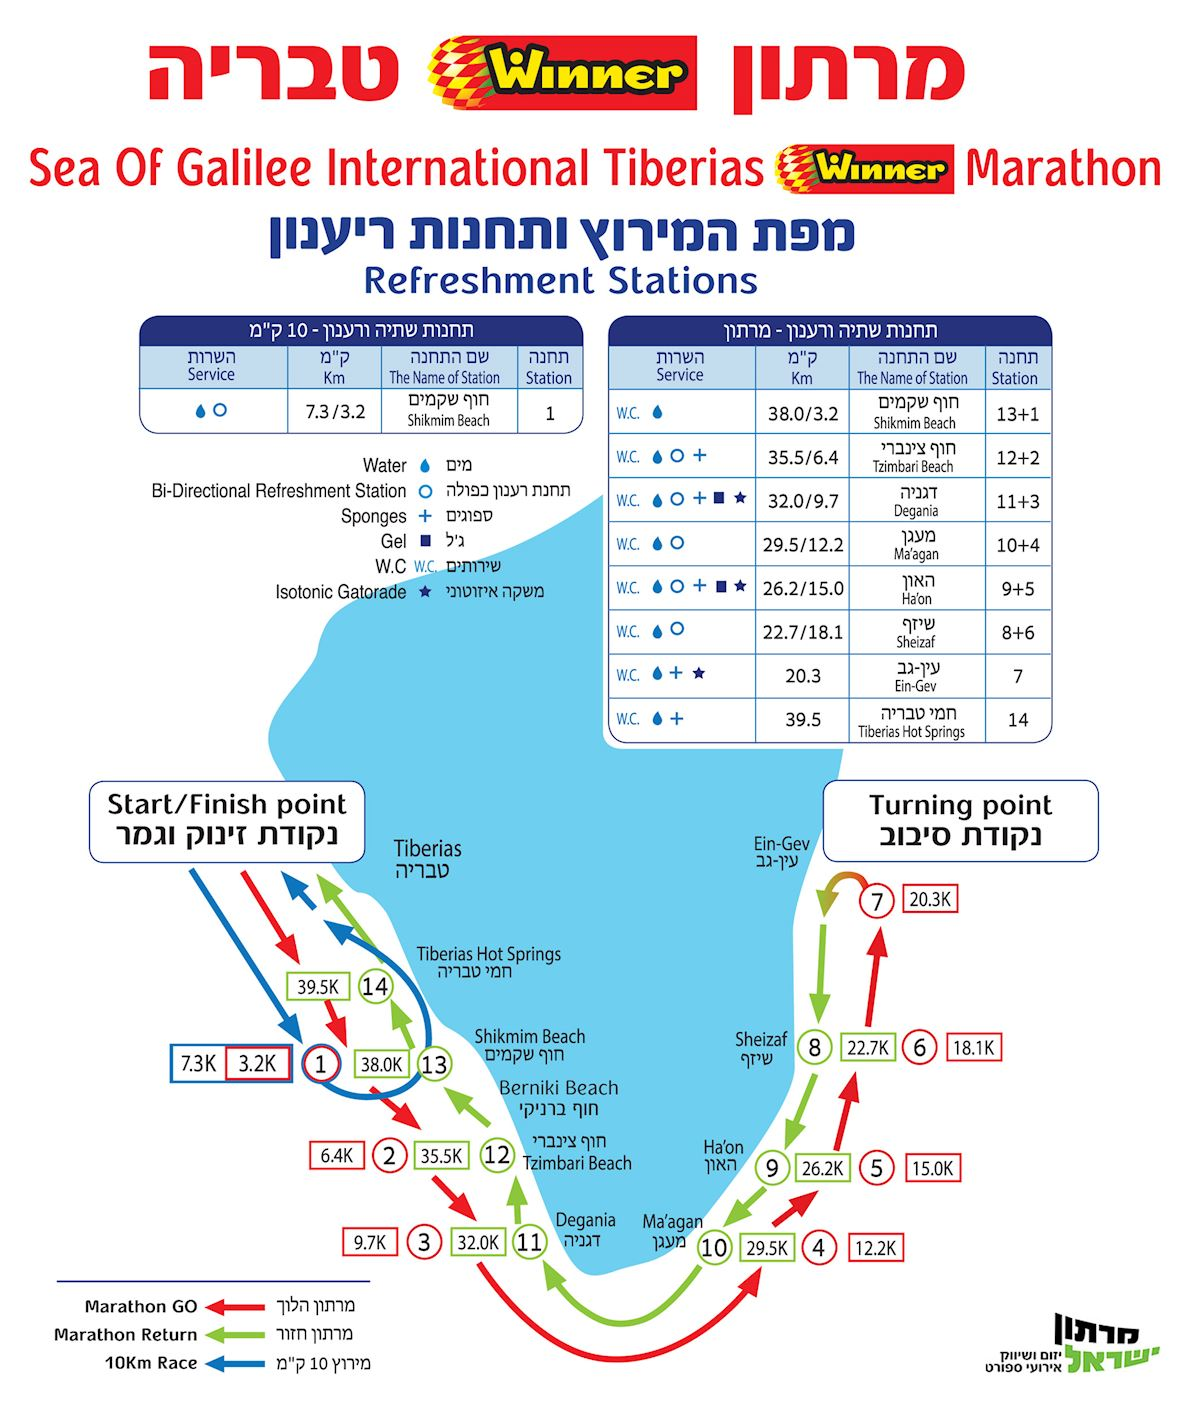 Sea of Galilee Marathon Mappa del percorso